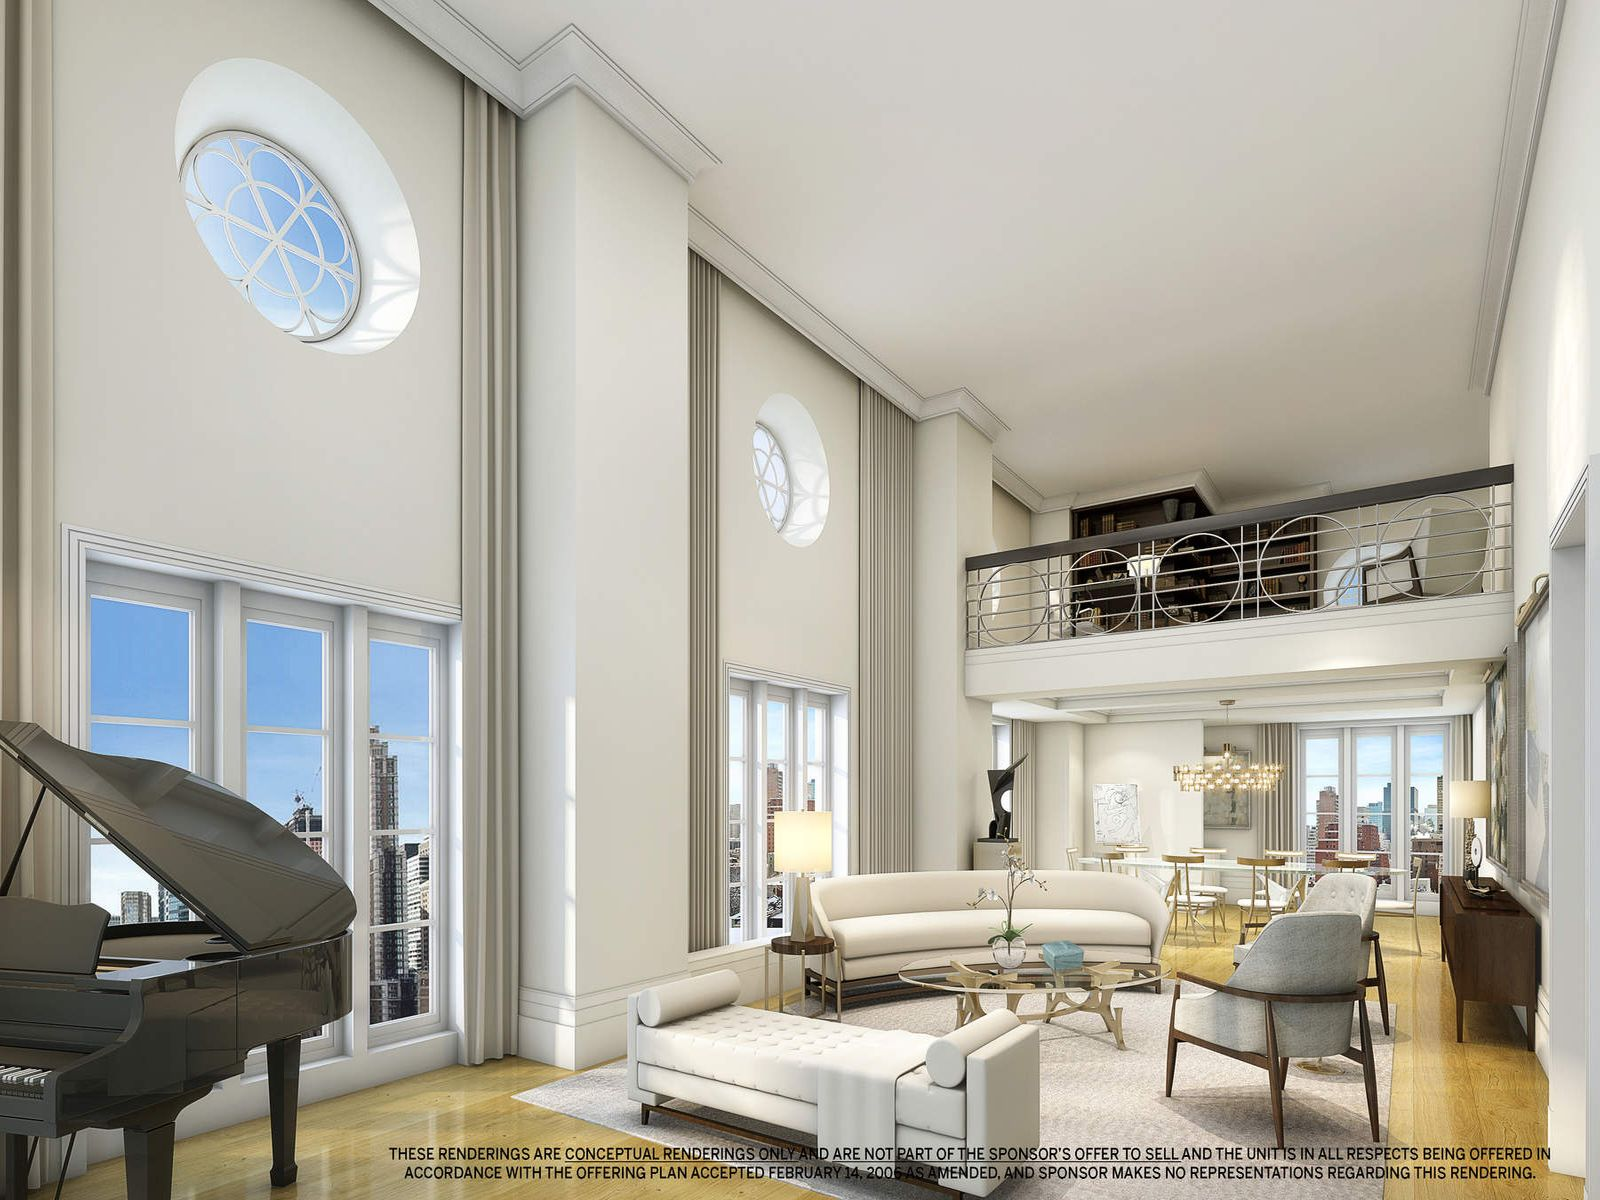 140 East 63rd Street, New York NY Condominium - New York City Real Estate